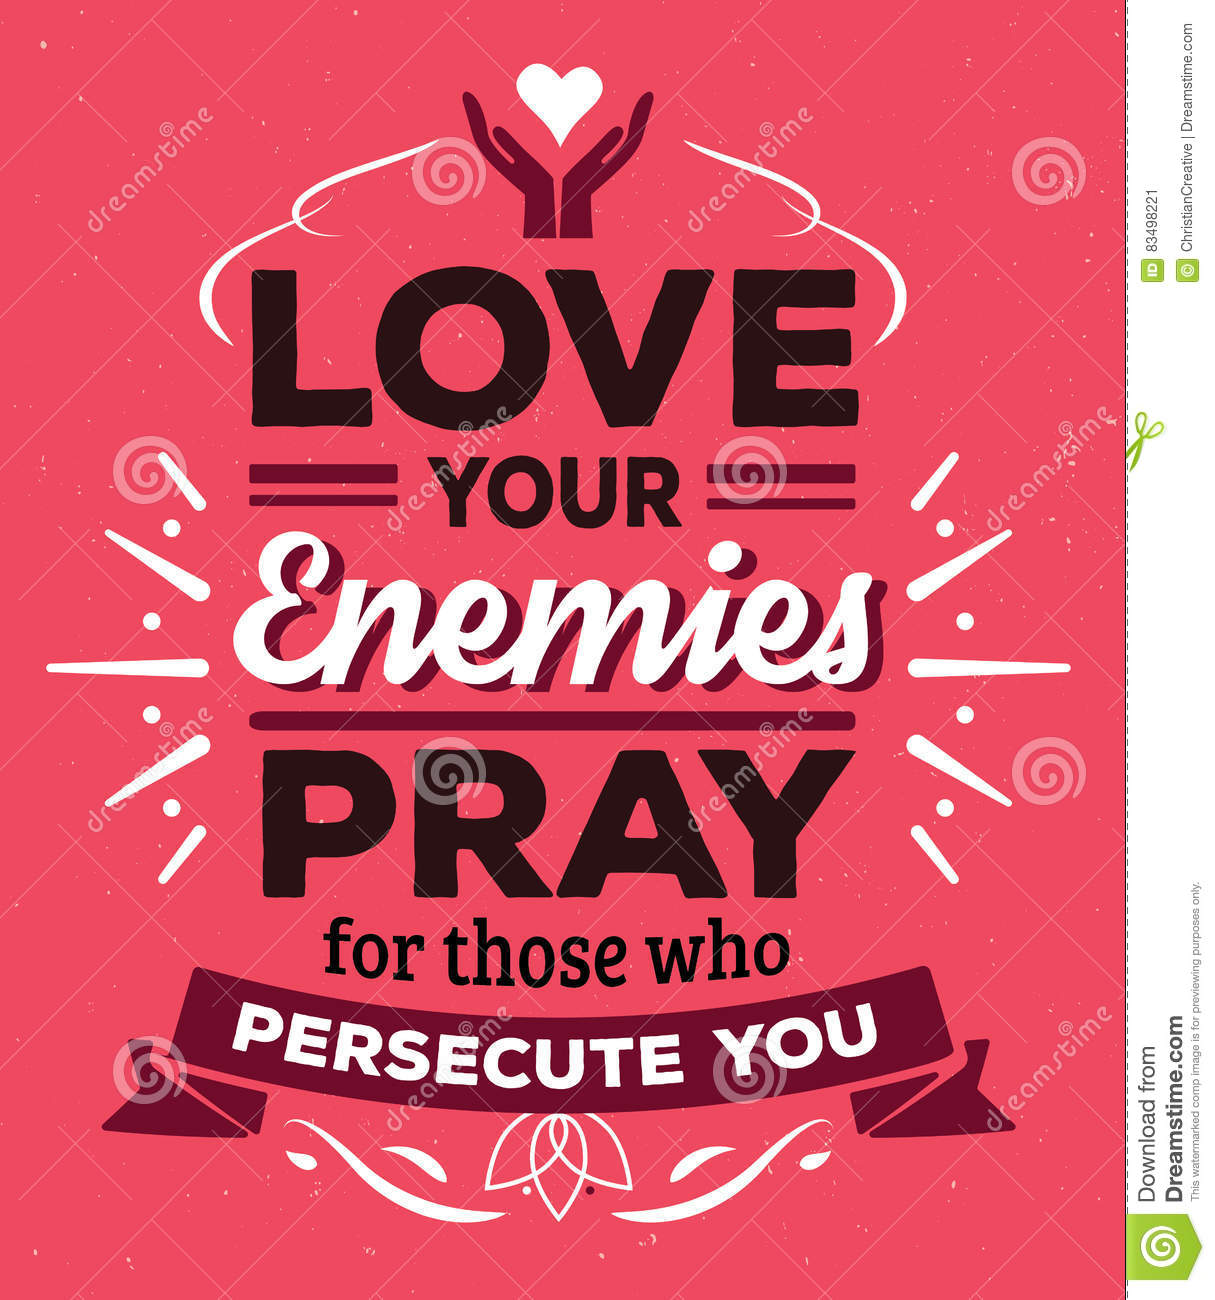 Love Your Enemies Pray For Those Who Persecute You Stock